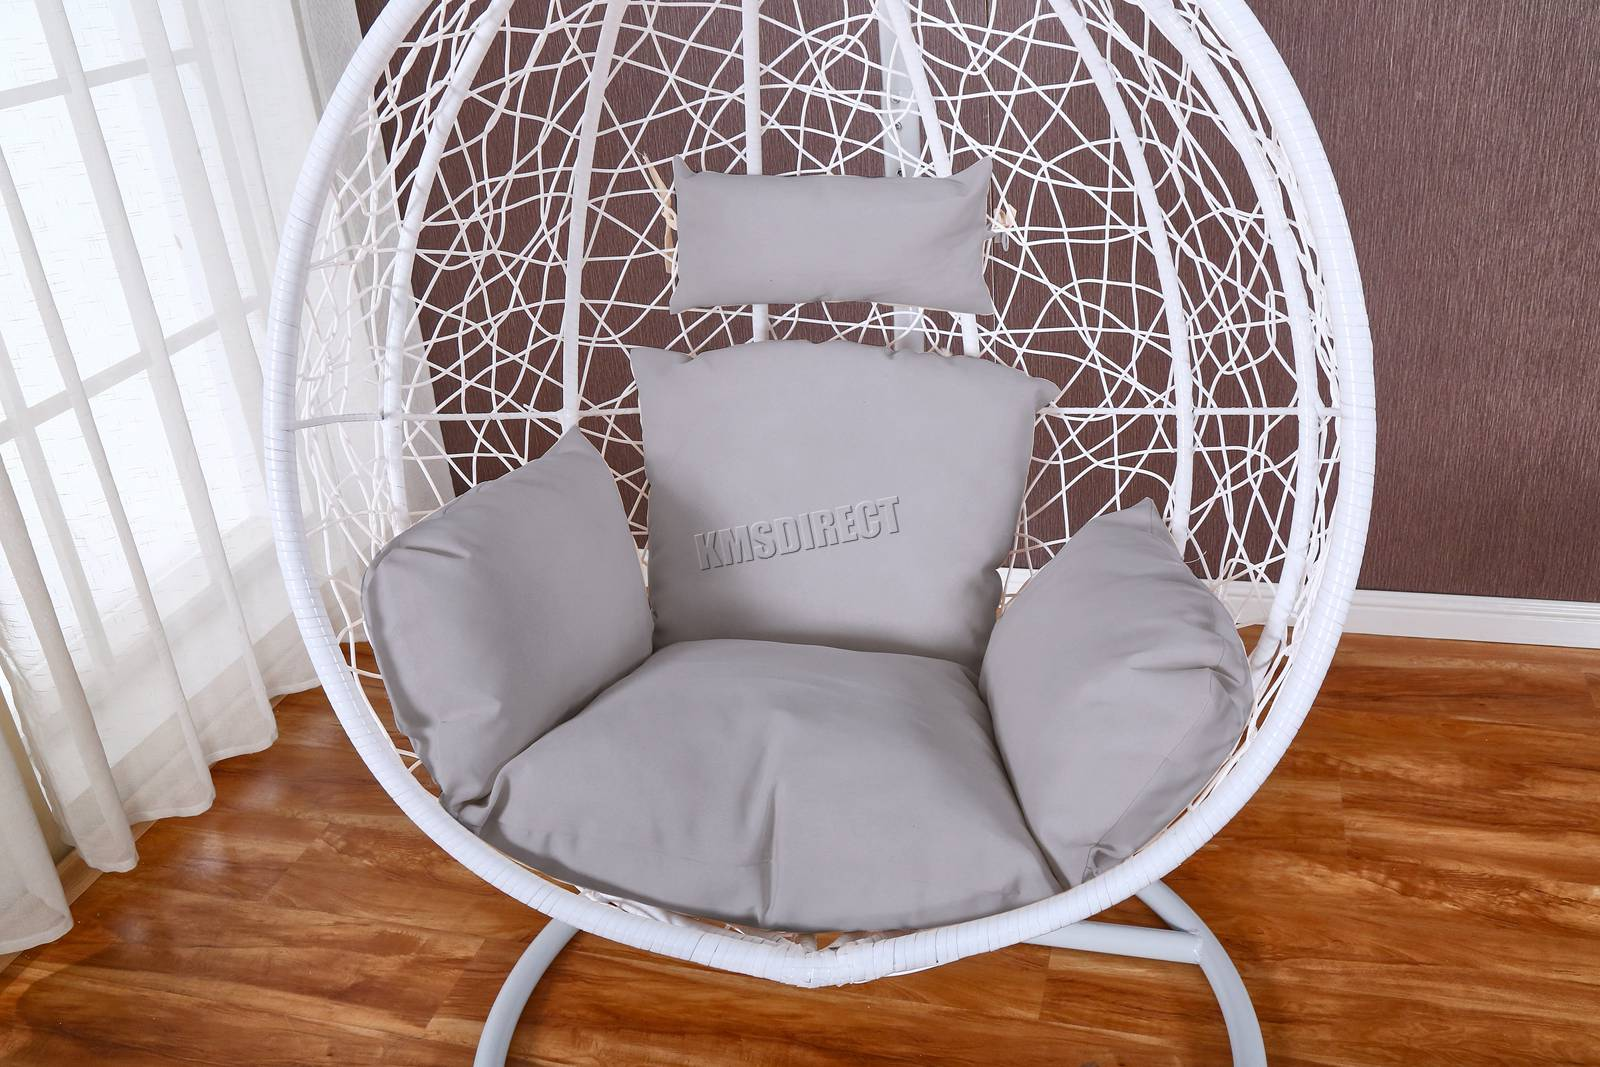 WestWood-Egg-Swing-Hanging-Chair-Hammock-Wave-With-Cushion-Rattan-Wicker-ESWR01 thumbnail 19